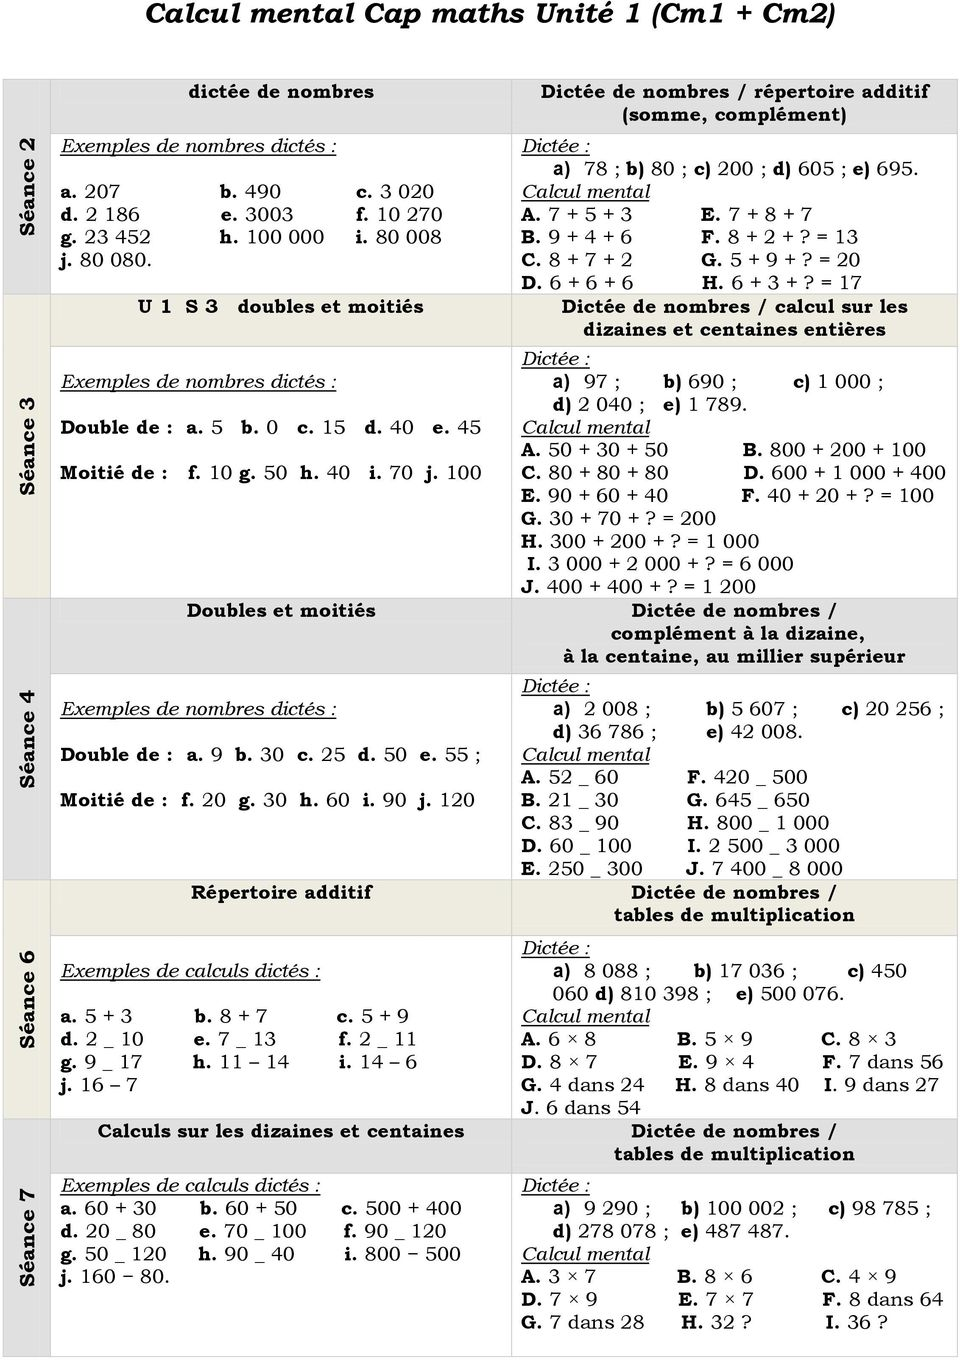 Calcul mental cap maths unit 1 cm1 cm2 pdf - Calcul mental table de multiplication ...